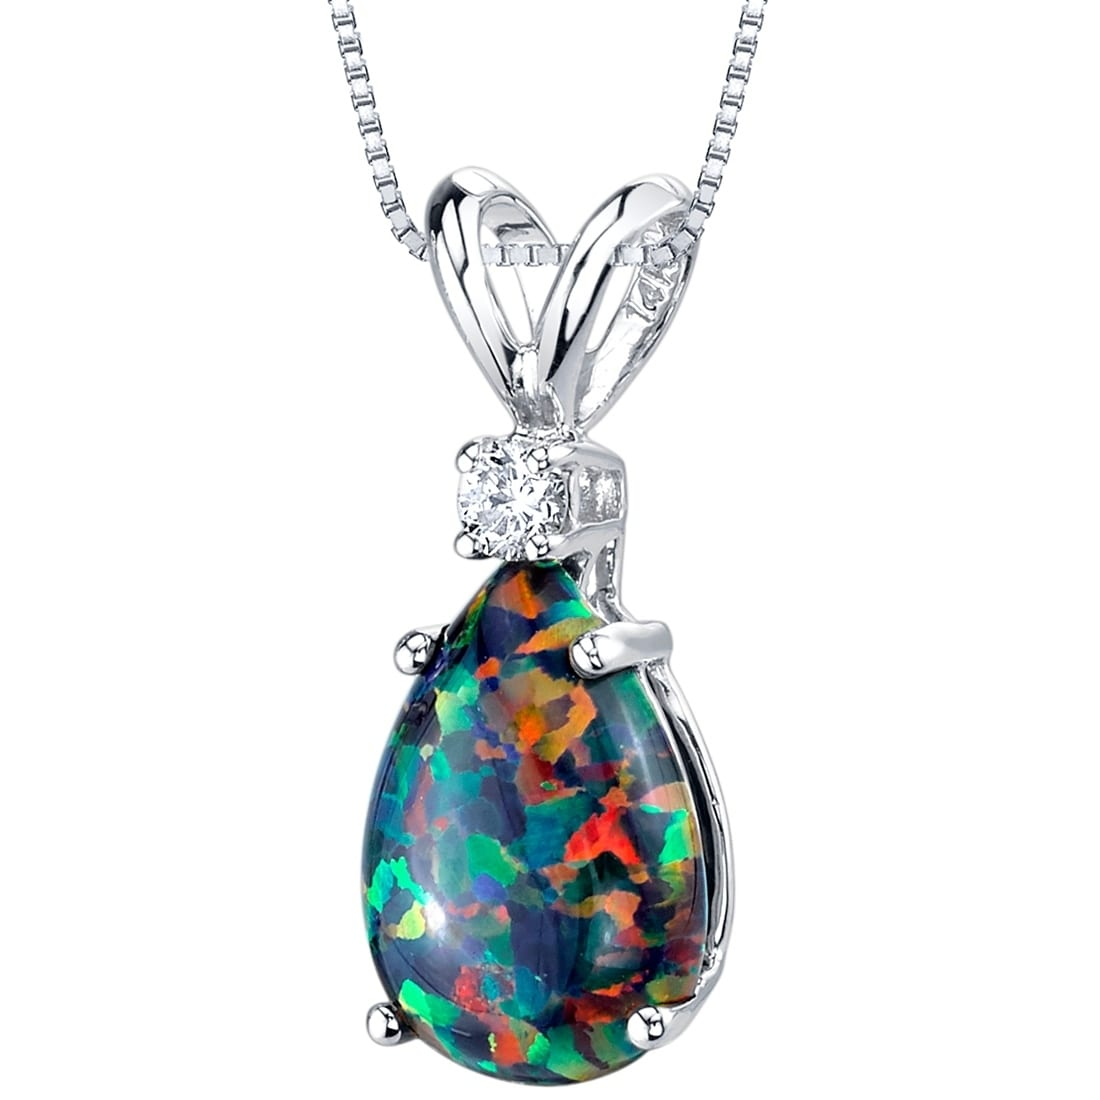 gold necklaces real gem stone flashopal buy opal yellow necklace chain pendants colorful shown pendant black on to